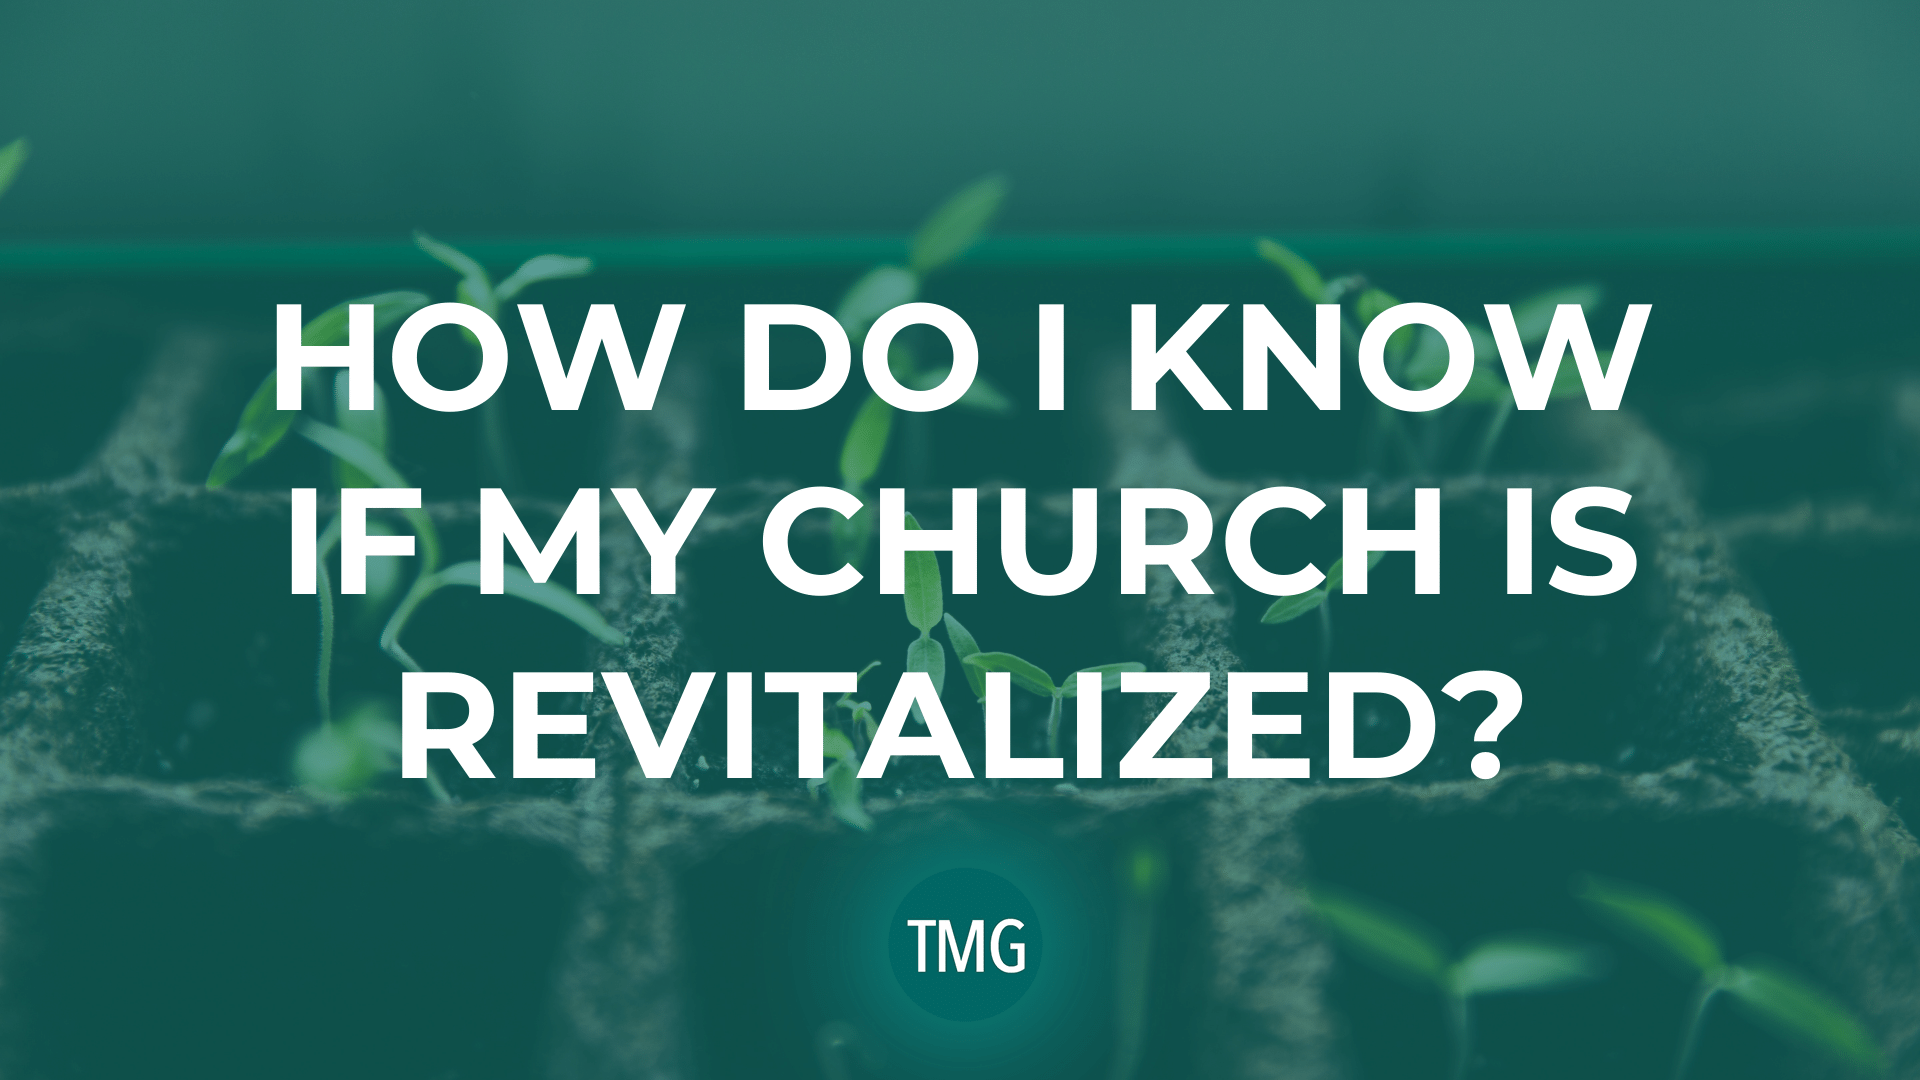 how-do-i-know-if-my-church-is-revitalized-the-church-revitalization-podast-malphurs-group-header-image